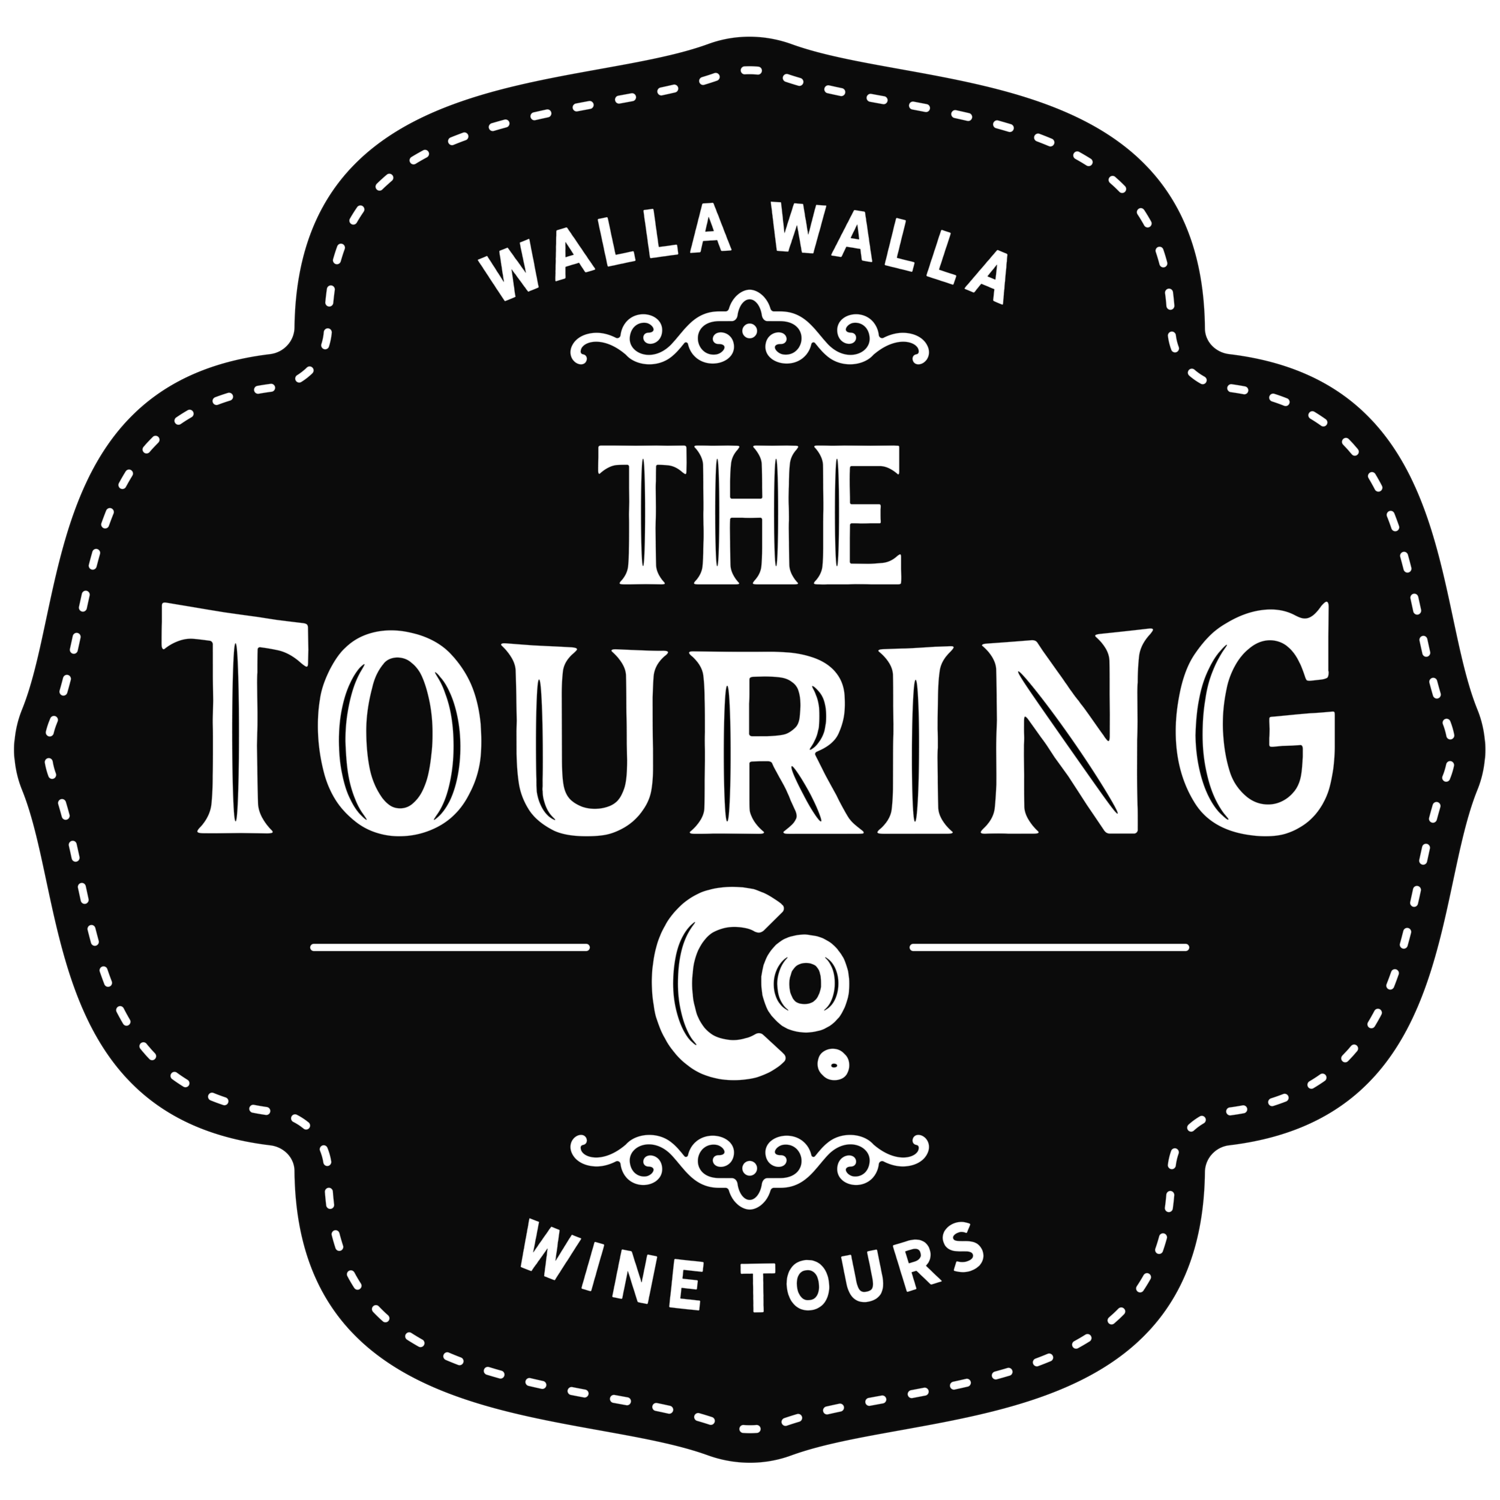 The Touring Company